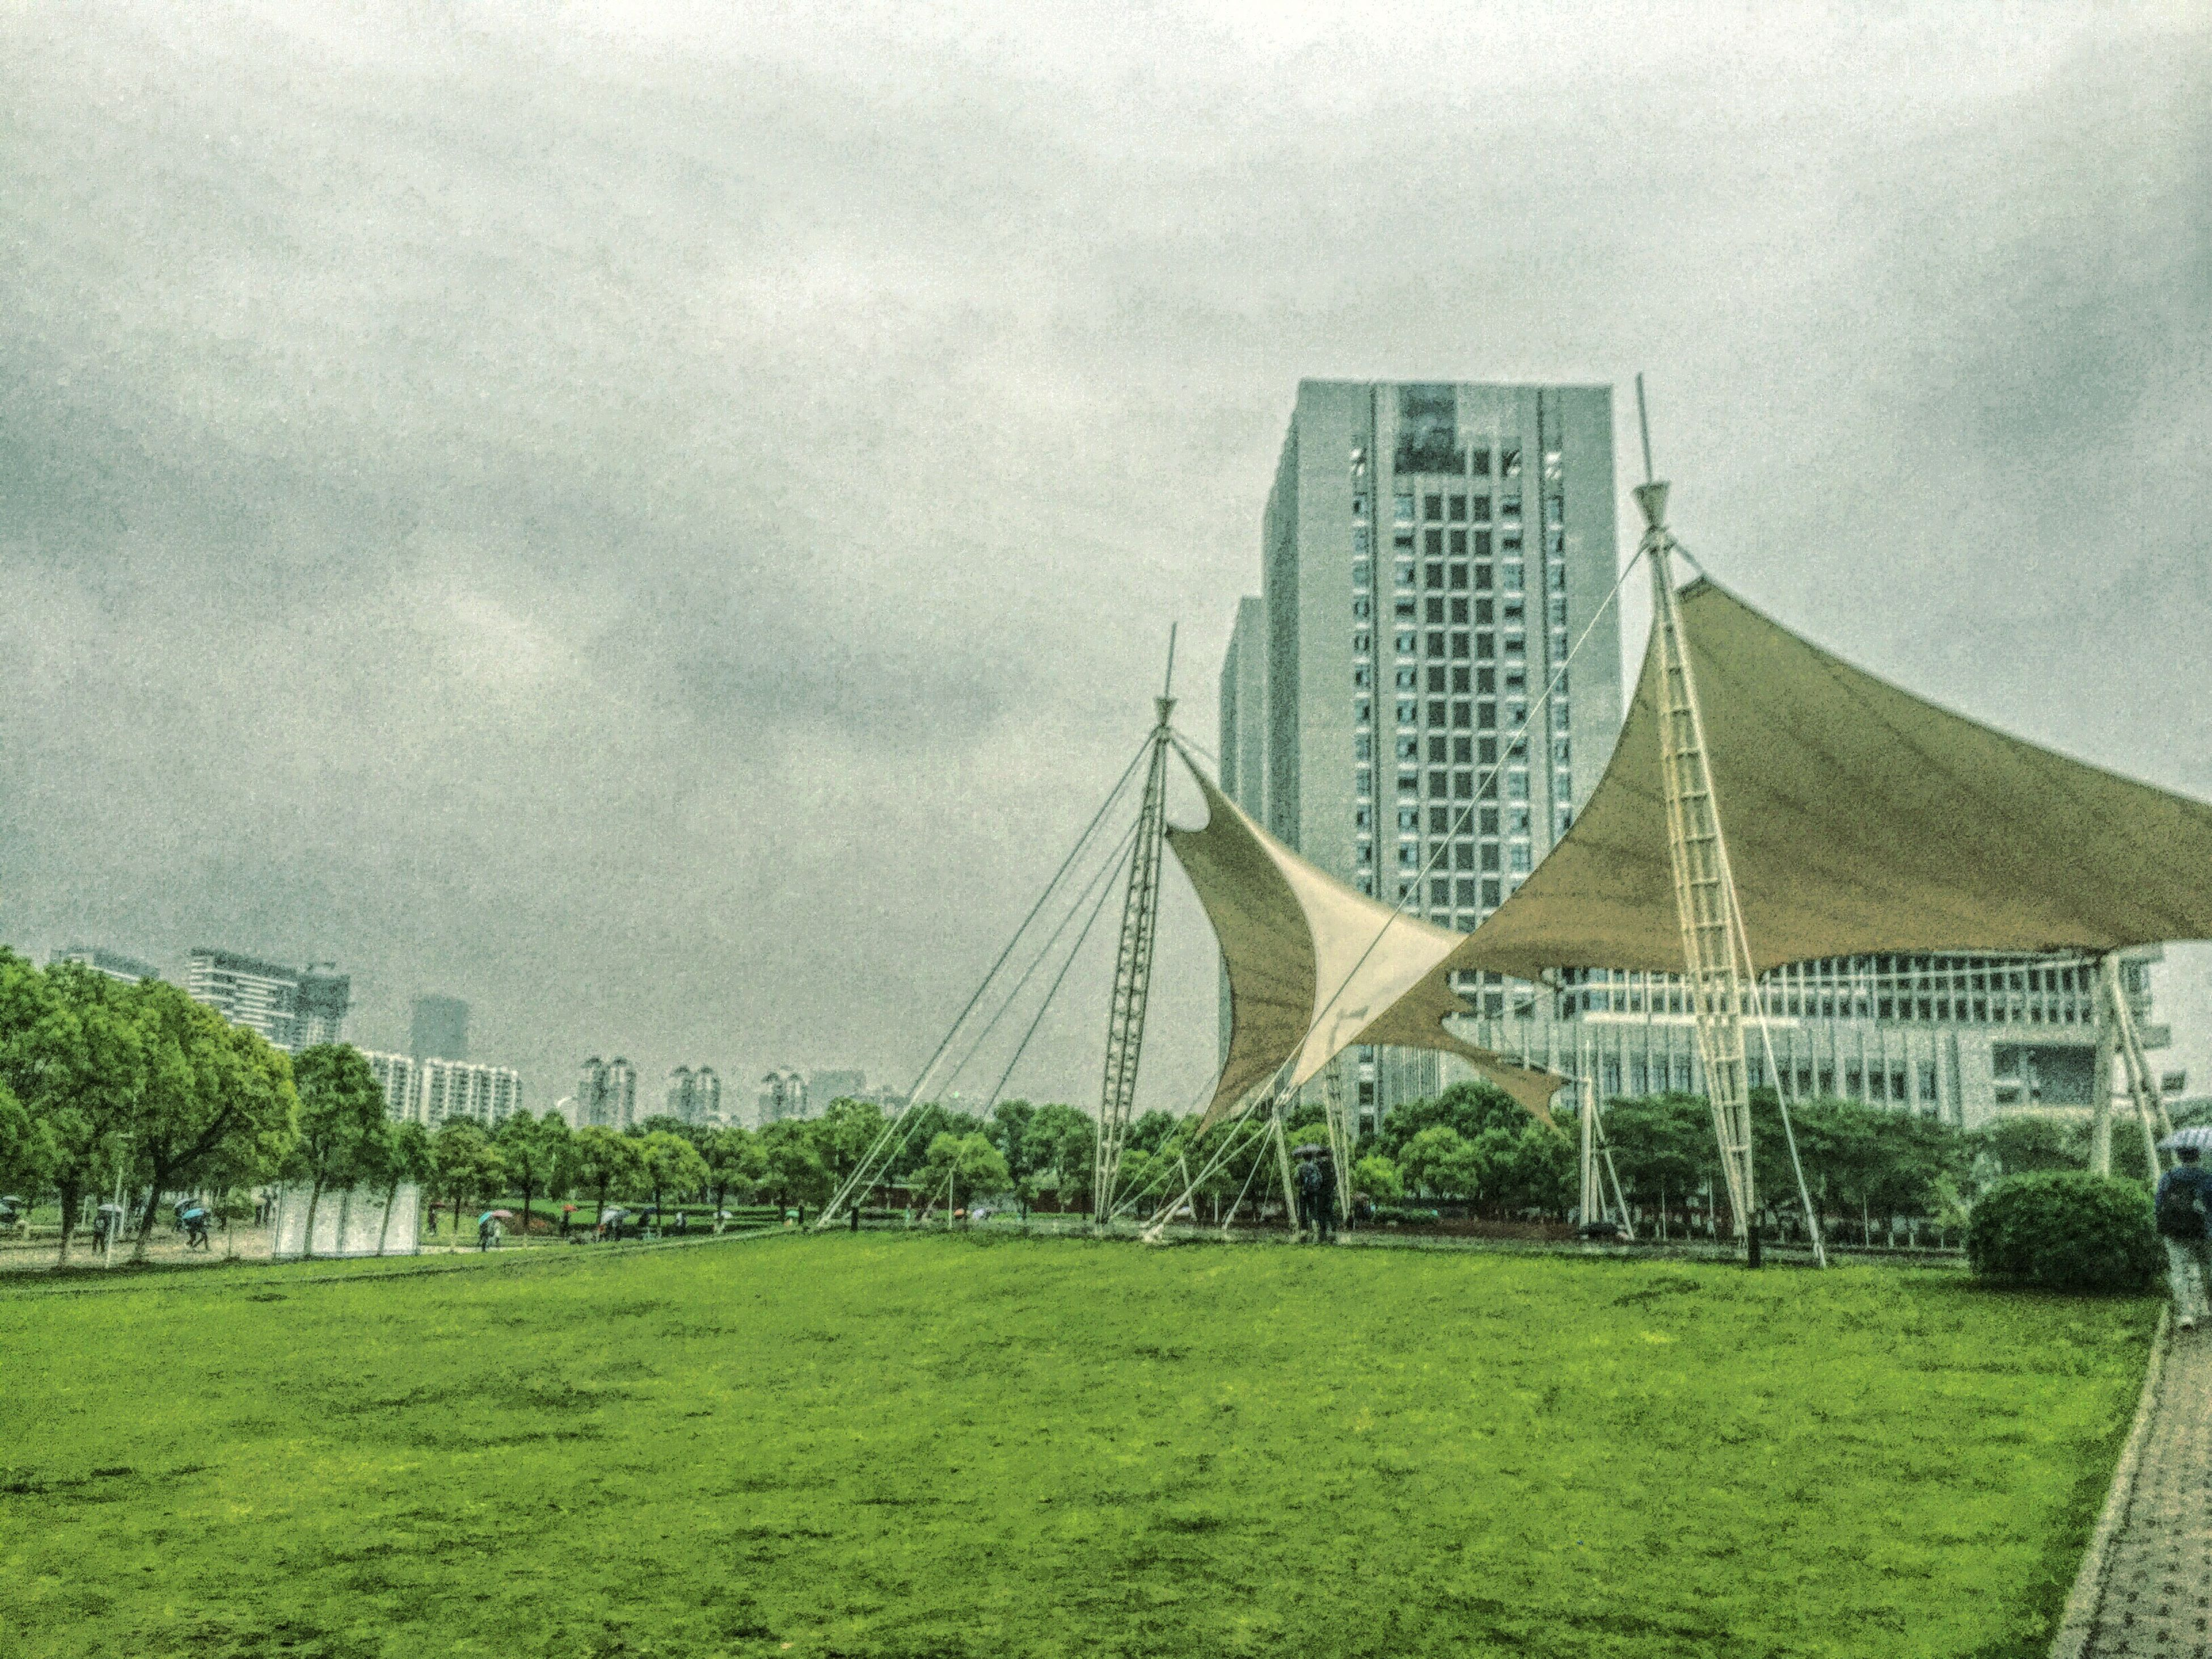 grass, sky, architecture, building exterior, built structure, cloud - sky, field, green color, cloudy, grassy, tree, day, outdoors, low angle view, cloud, no people, plant, nature, growth, modern